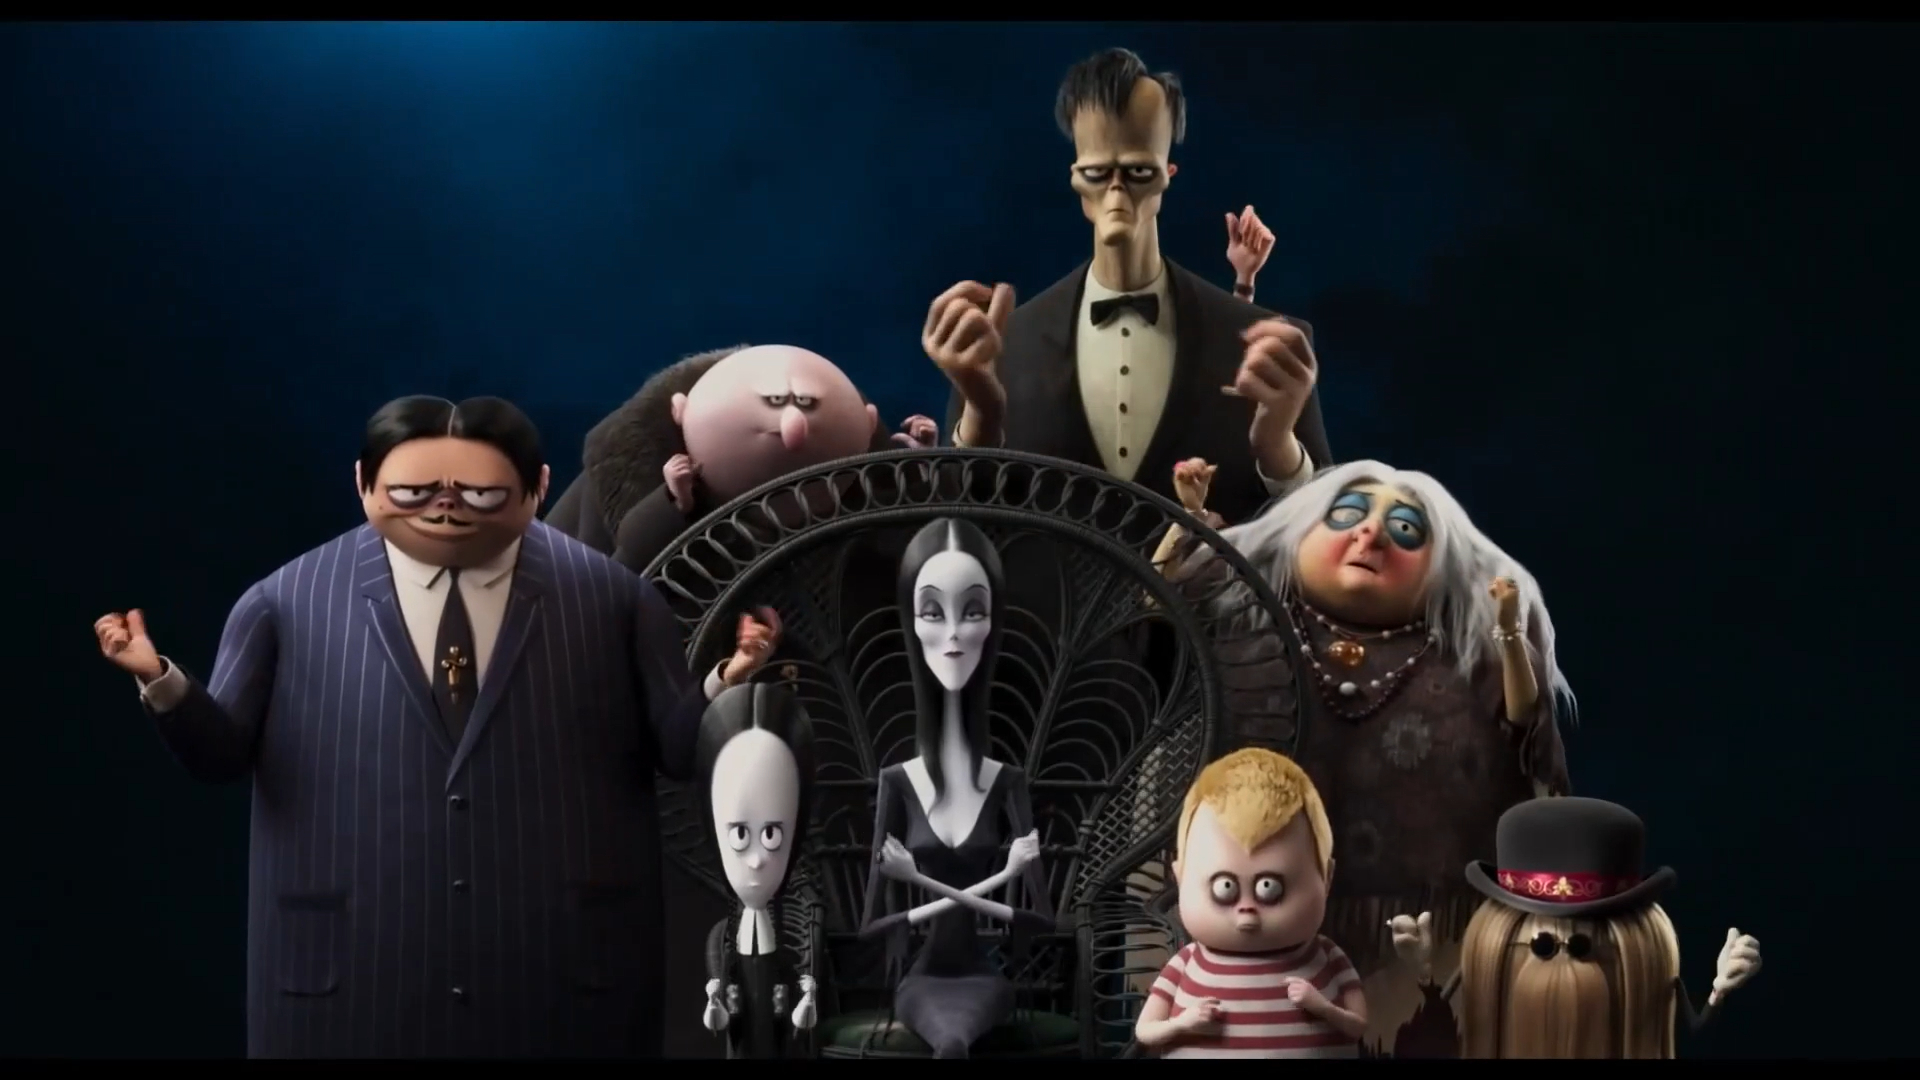 Promo for The Addams Family 2